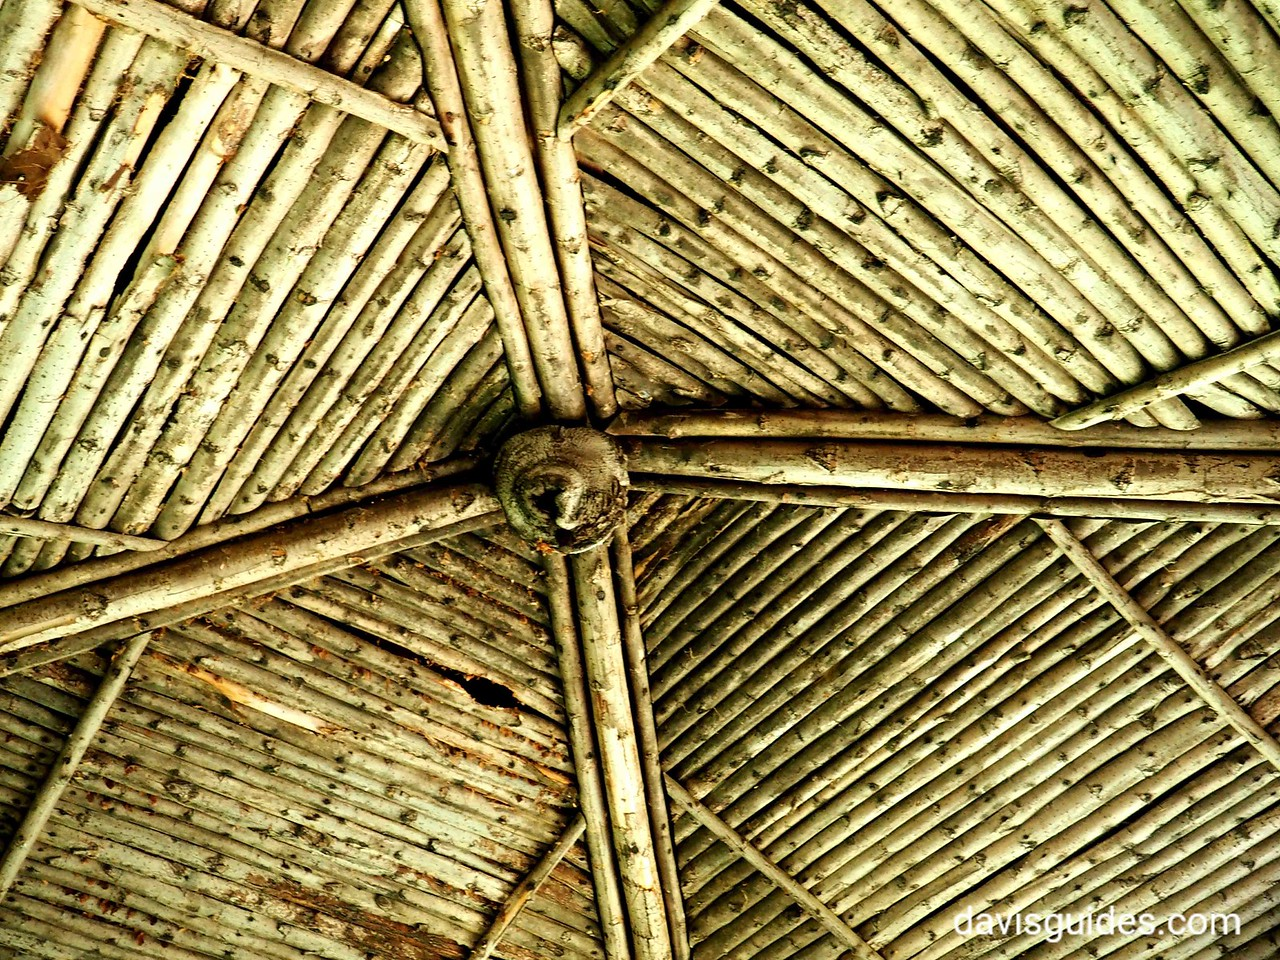 Roof of garden gazebo, Marsh Billings Rockefeller NHS, VT